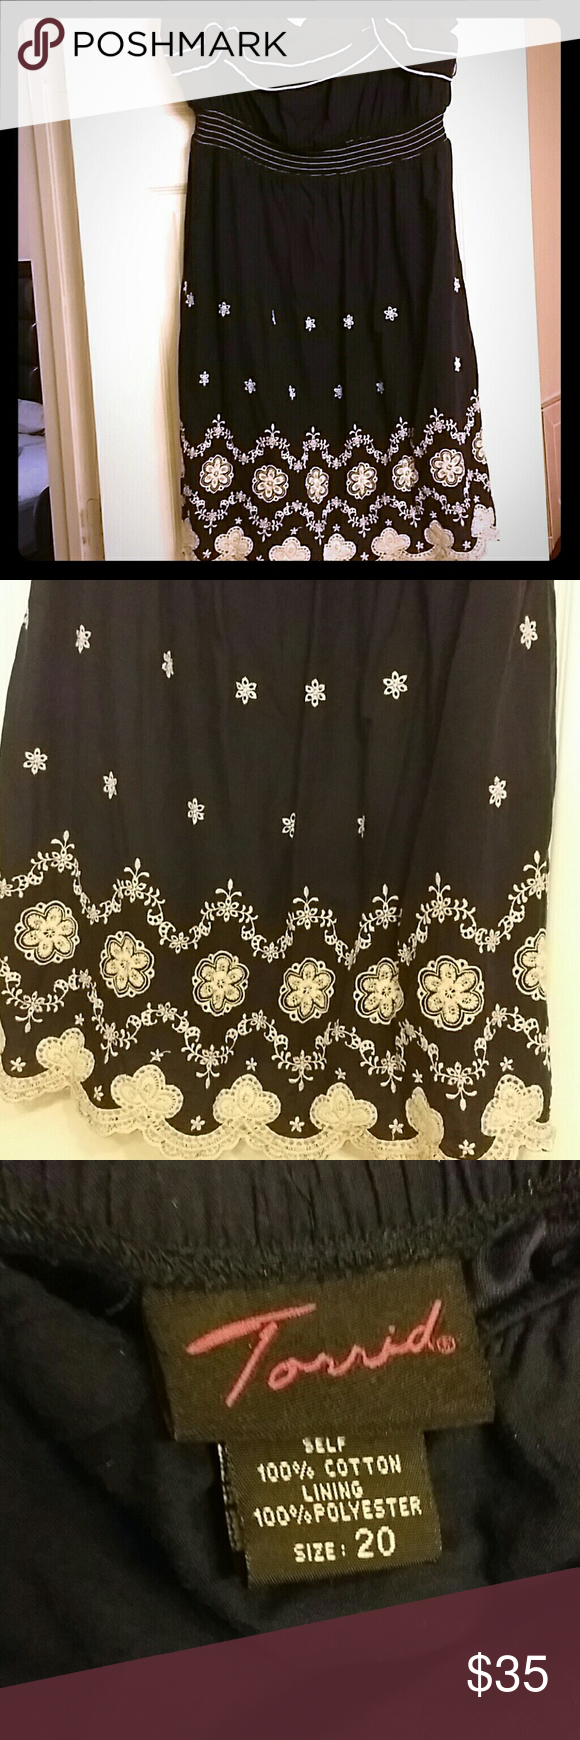 Cute Bohemian style dress! Knee length navy and white. Boho cuteness! This dress is strapless with a sinched empire waist. Perfect for fall with a cute belt, little denim jacket, and cowboy boots or easy summer dress with sandals. Only worn once. Perfect condition. Offer welcomed! torrid Dresses Strapless